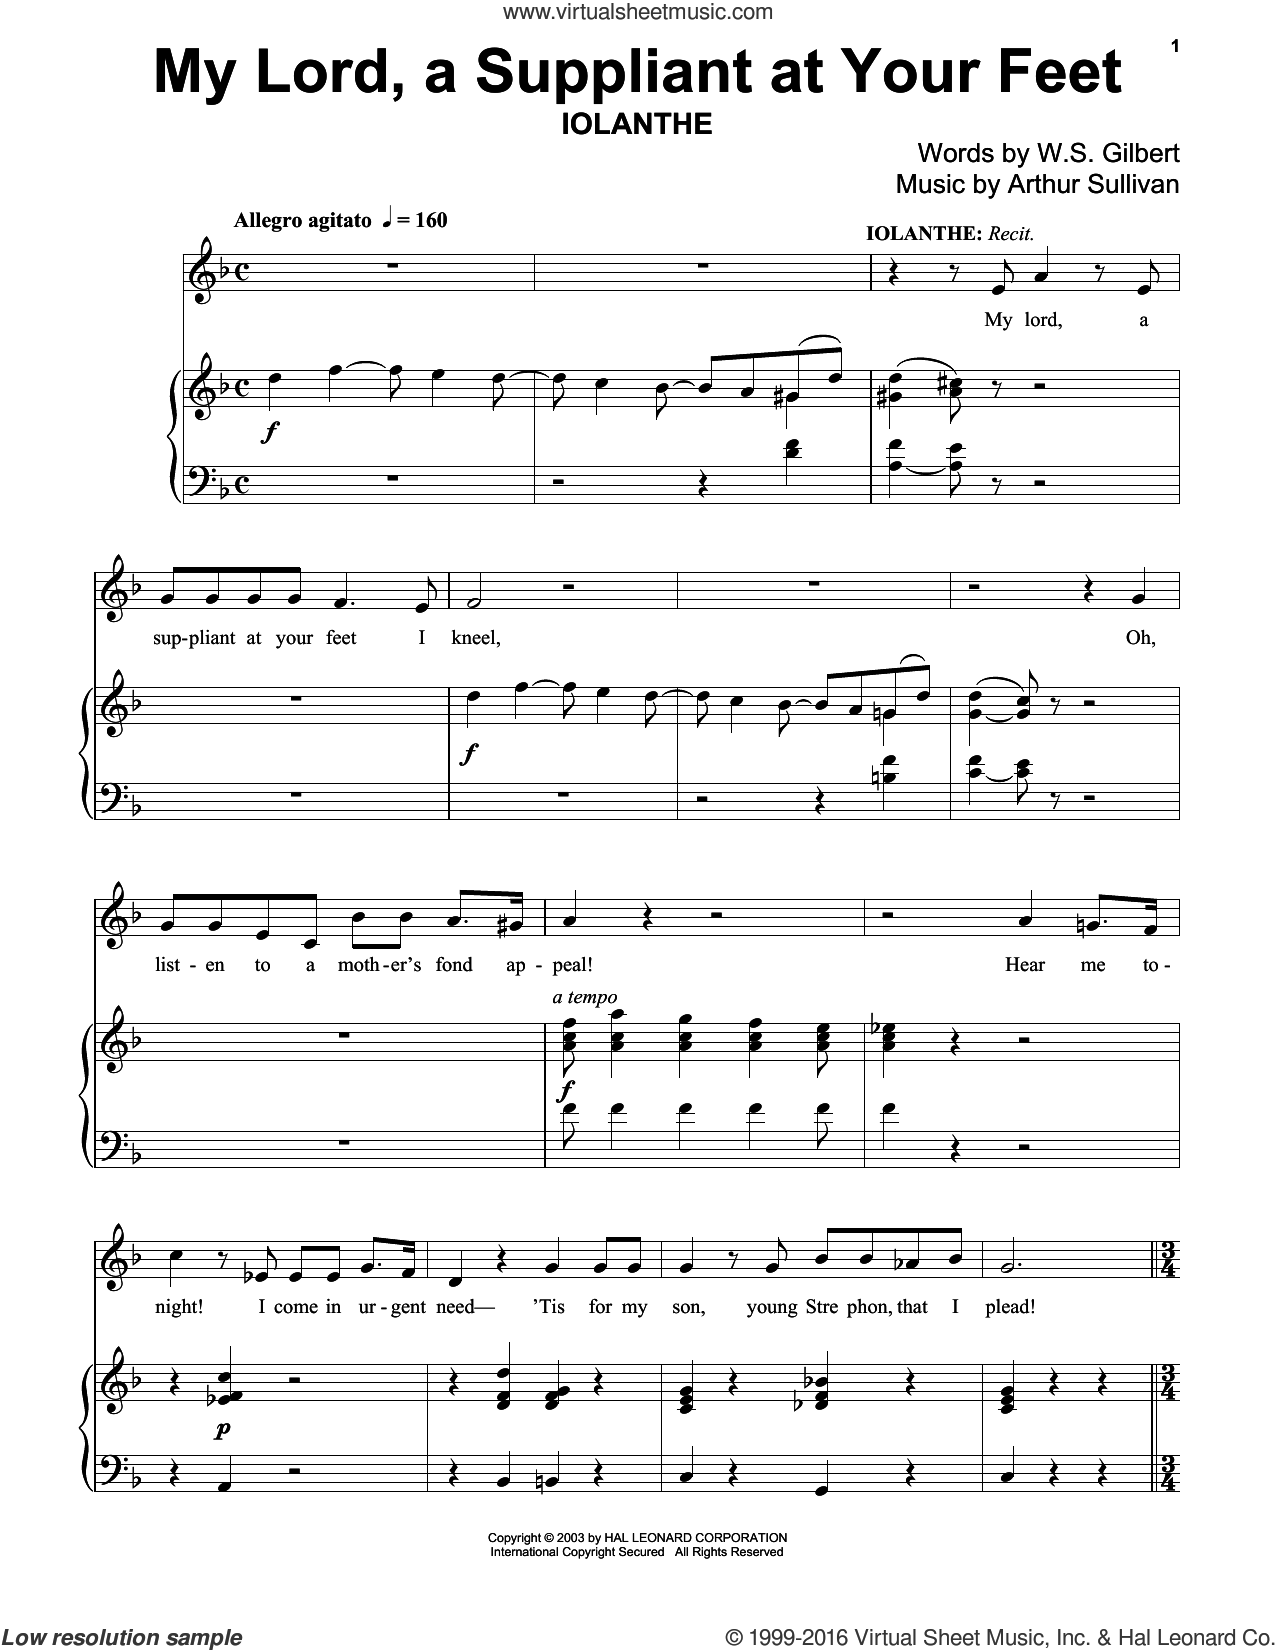 My Lord, A Suppliant At Your Feet sheet music for piano solo by Gilbert & Sullivan, Richard Walters, Arthur Sullivan and William S. Gilbert. Score Image Preview.